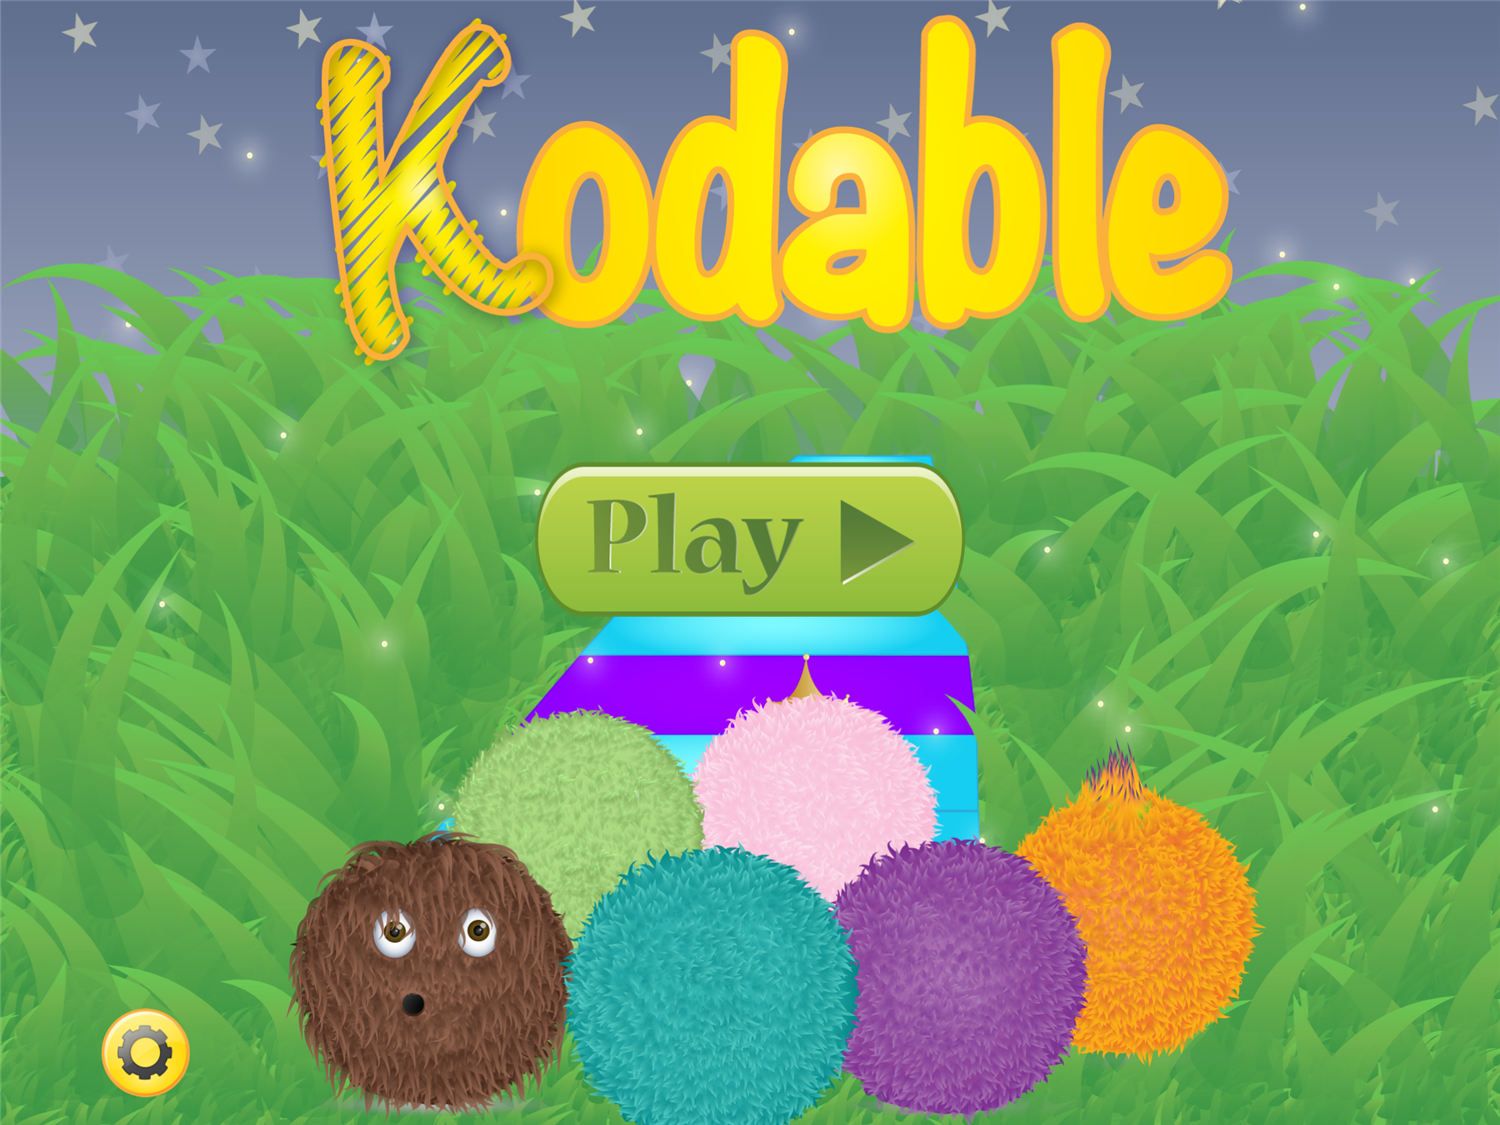 Kodable